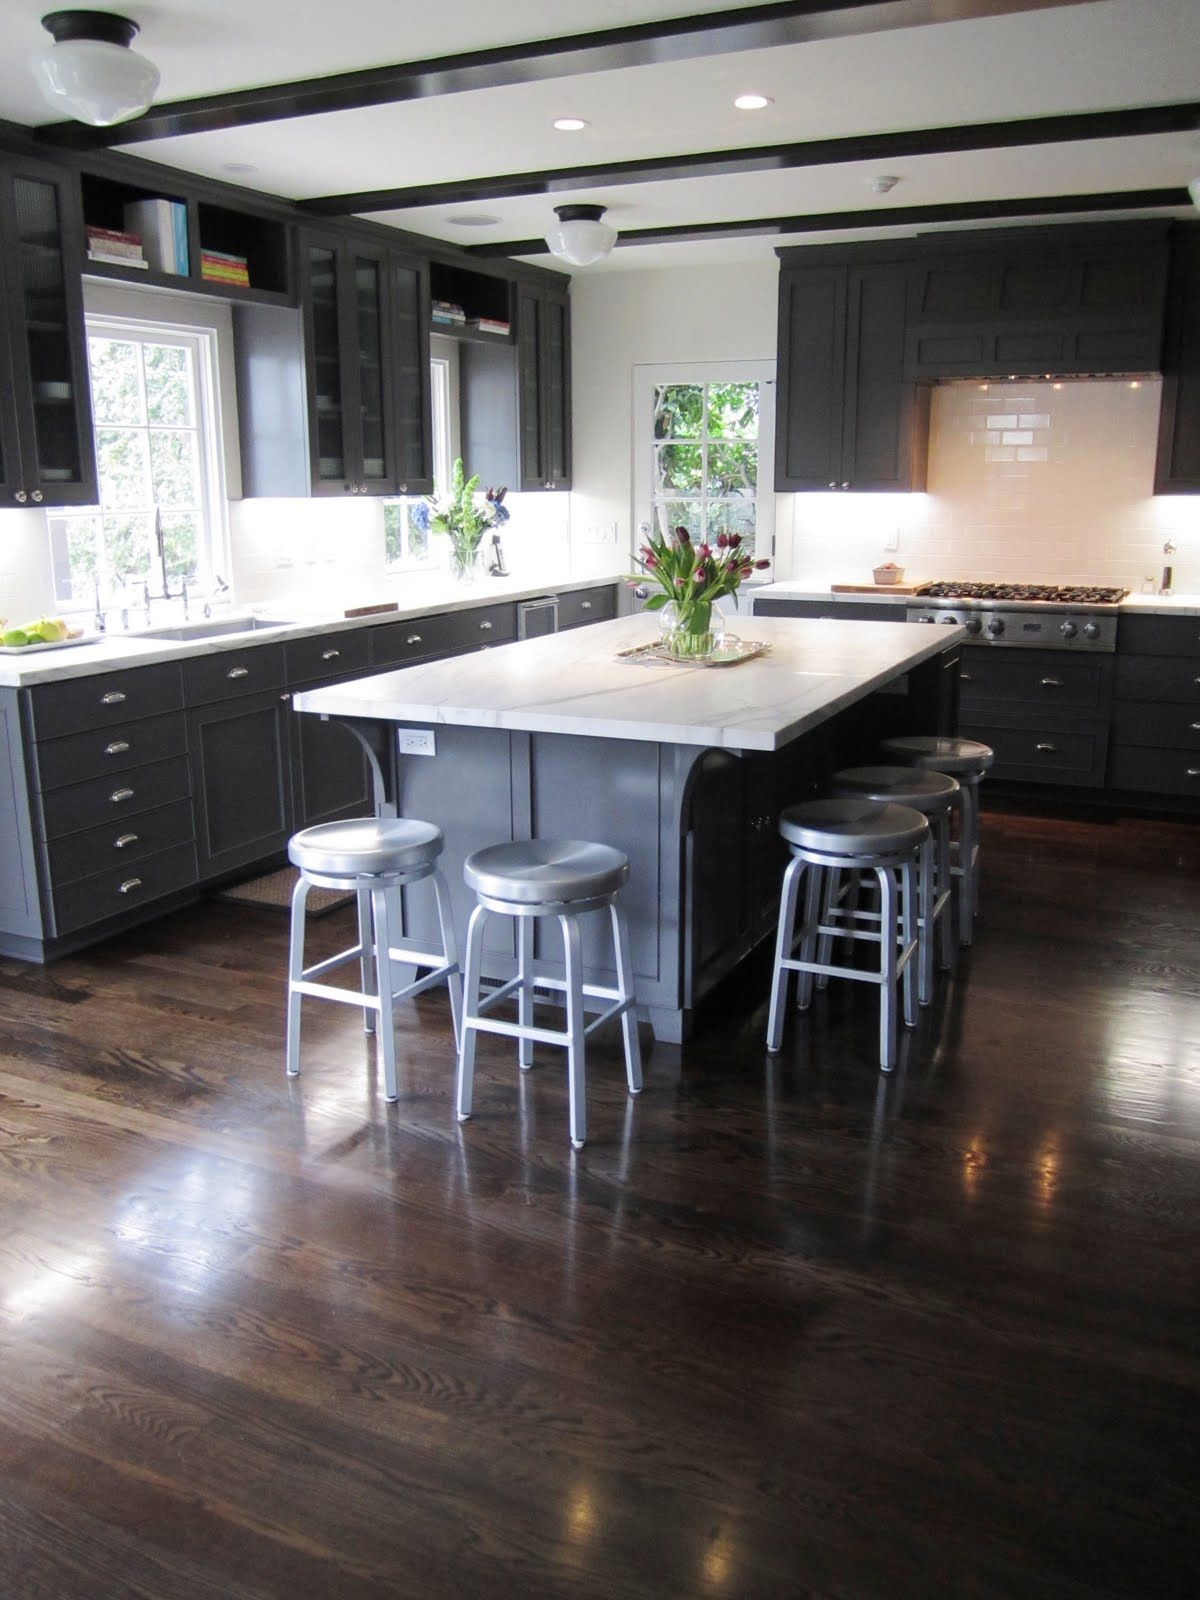 Wood Floors In Kitchens Thin Celing Beams In Kitchen Cococozy Cococozy Exclusive